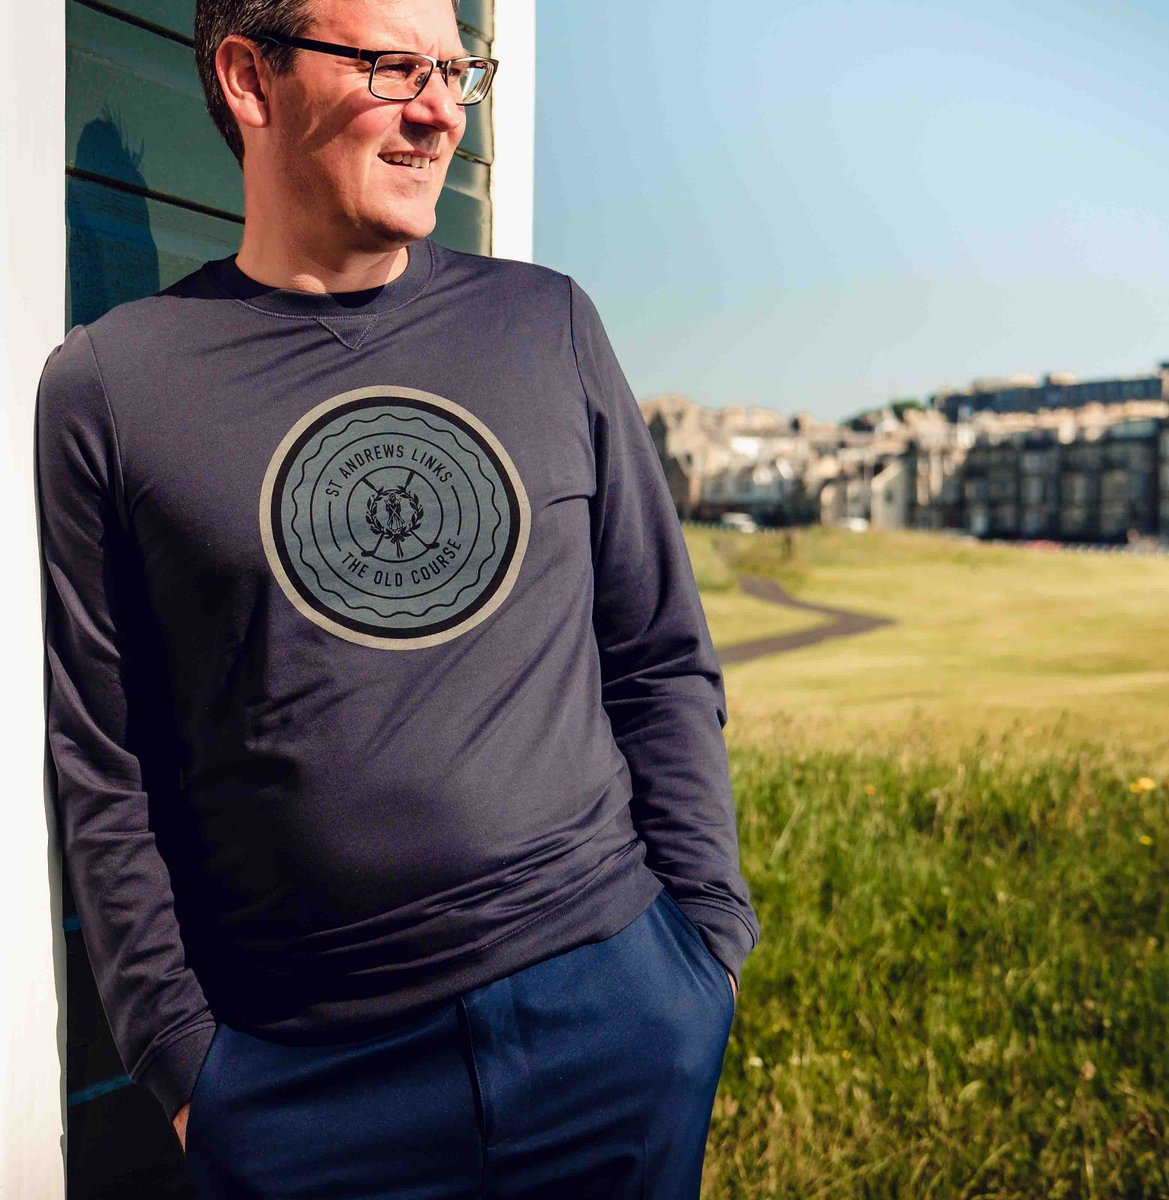 TravisMathew draws its inspiration from Southern California's surf, sand and sun lifestyle. We can't always rely on the So-Cal climate in St Andrews but TravisMathew is perfect for a day on the course. Shop our collection of performance sweaters and polos: bit.ly/TMTW2020